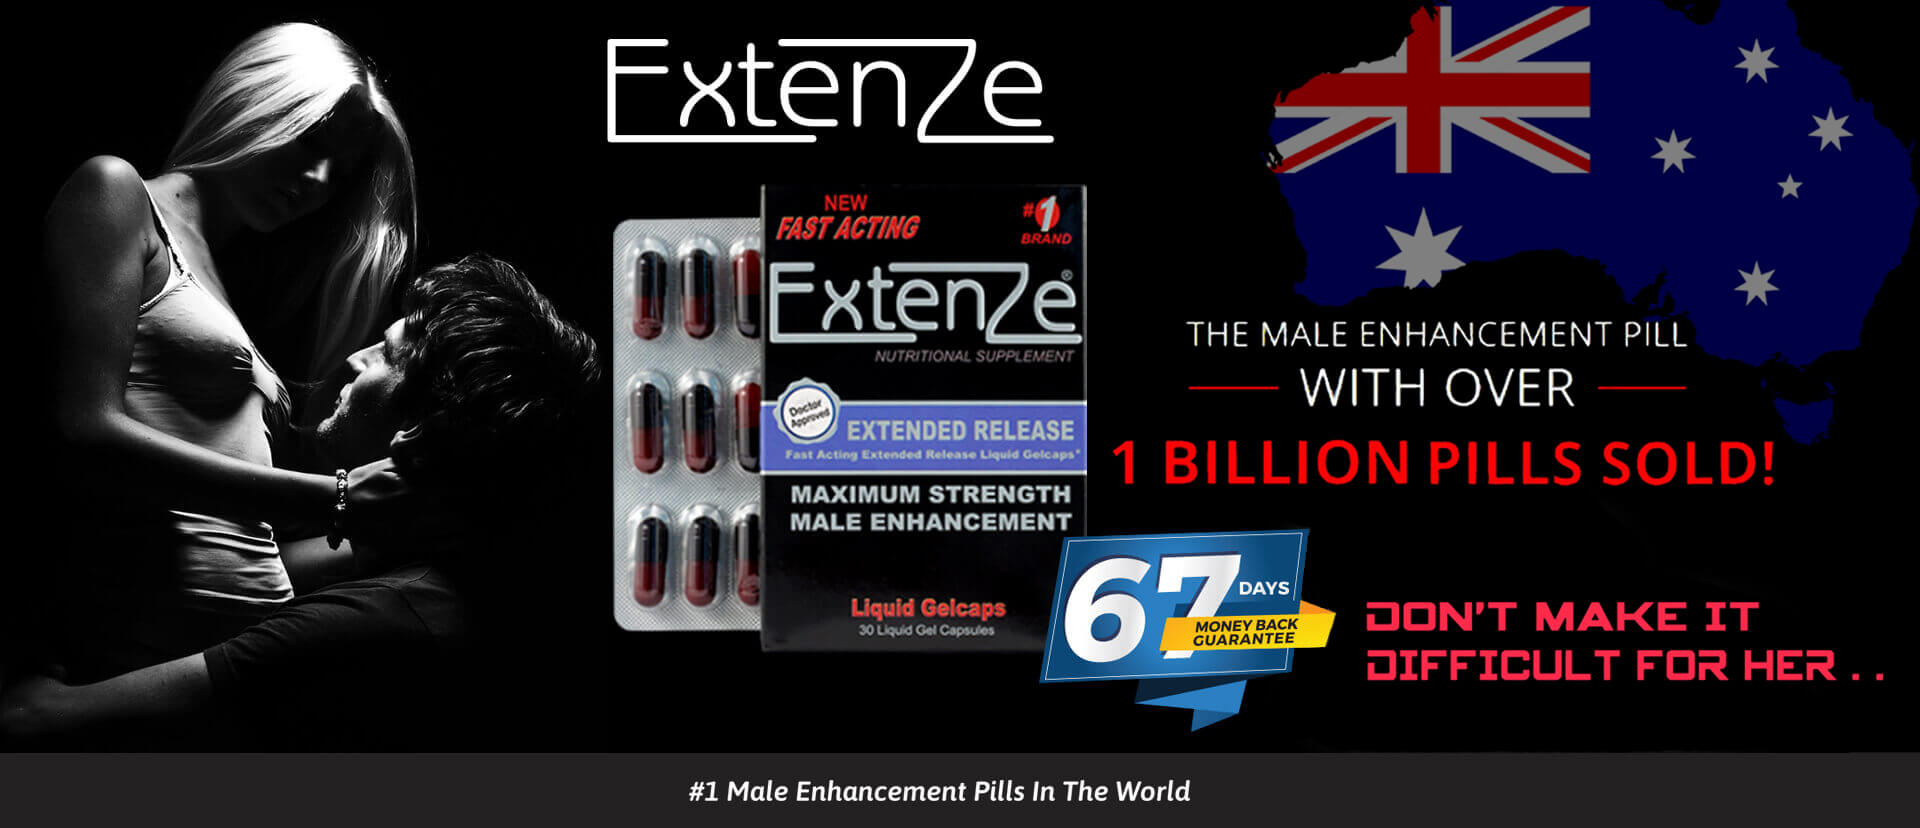 The Majers Of Extenze